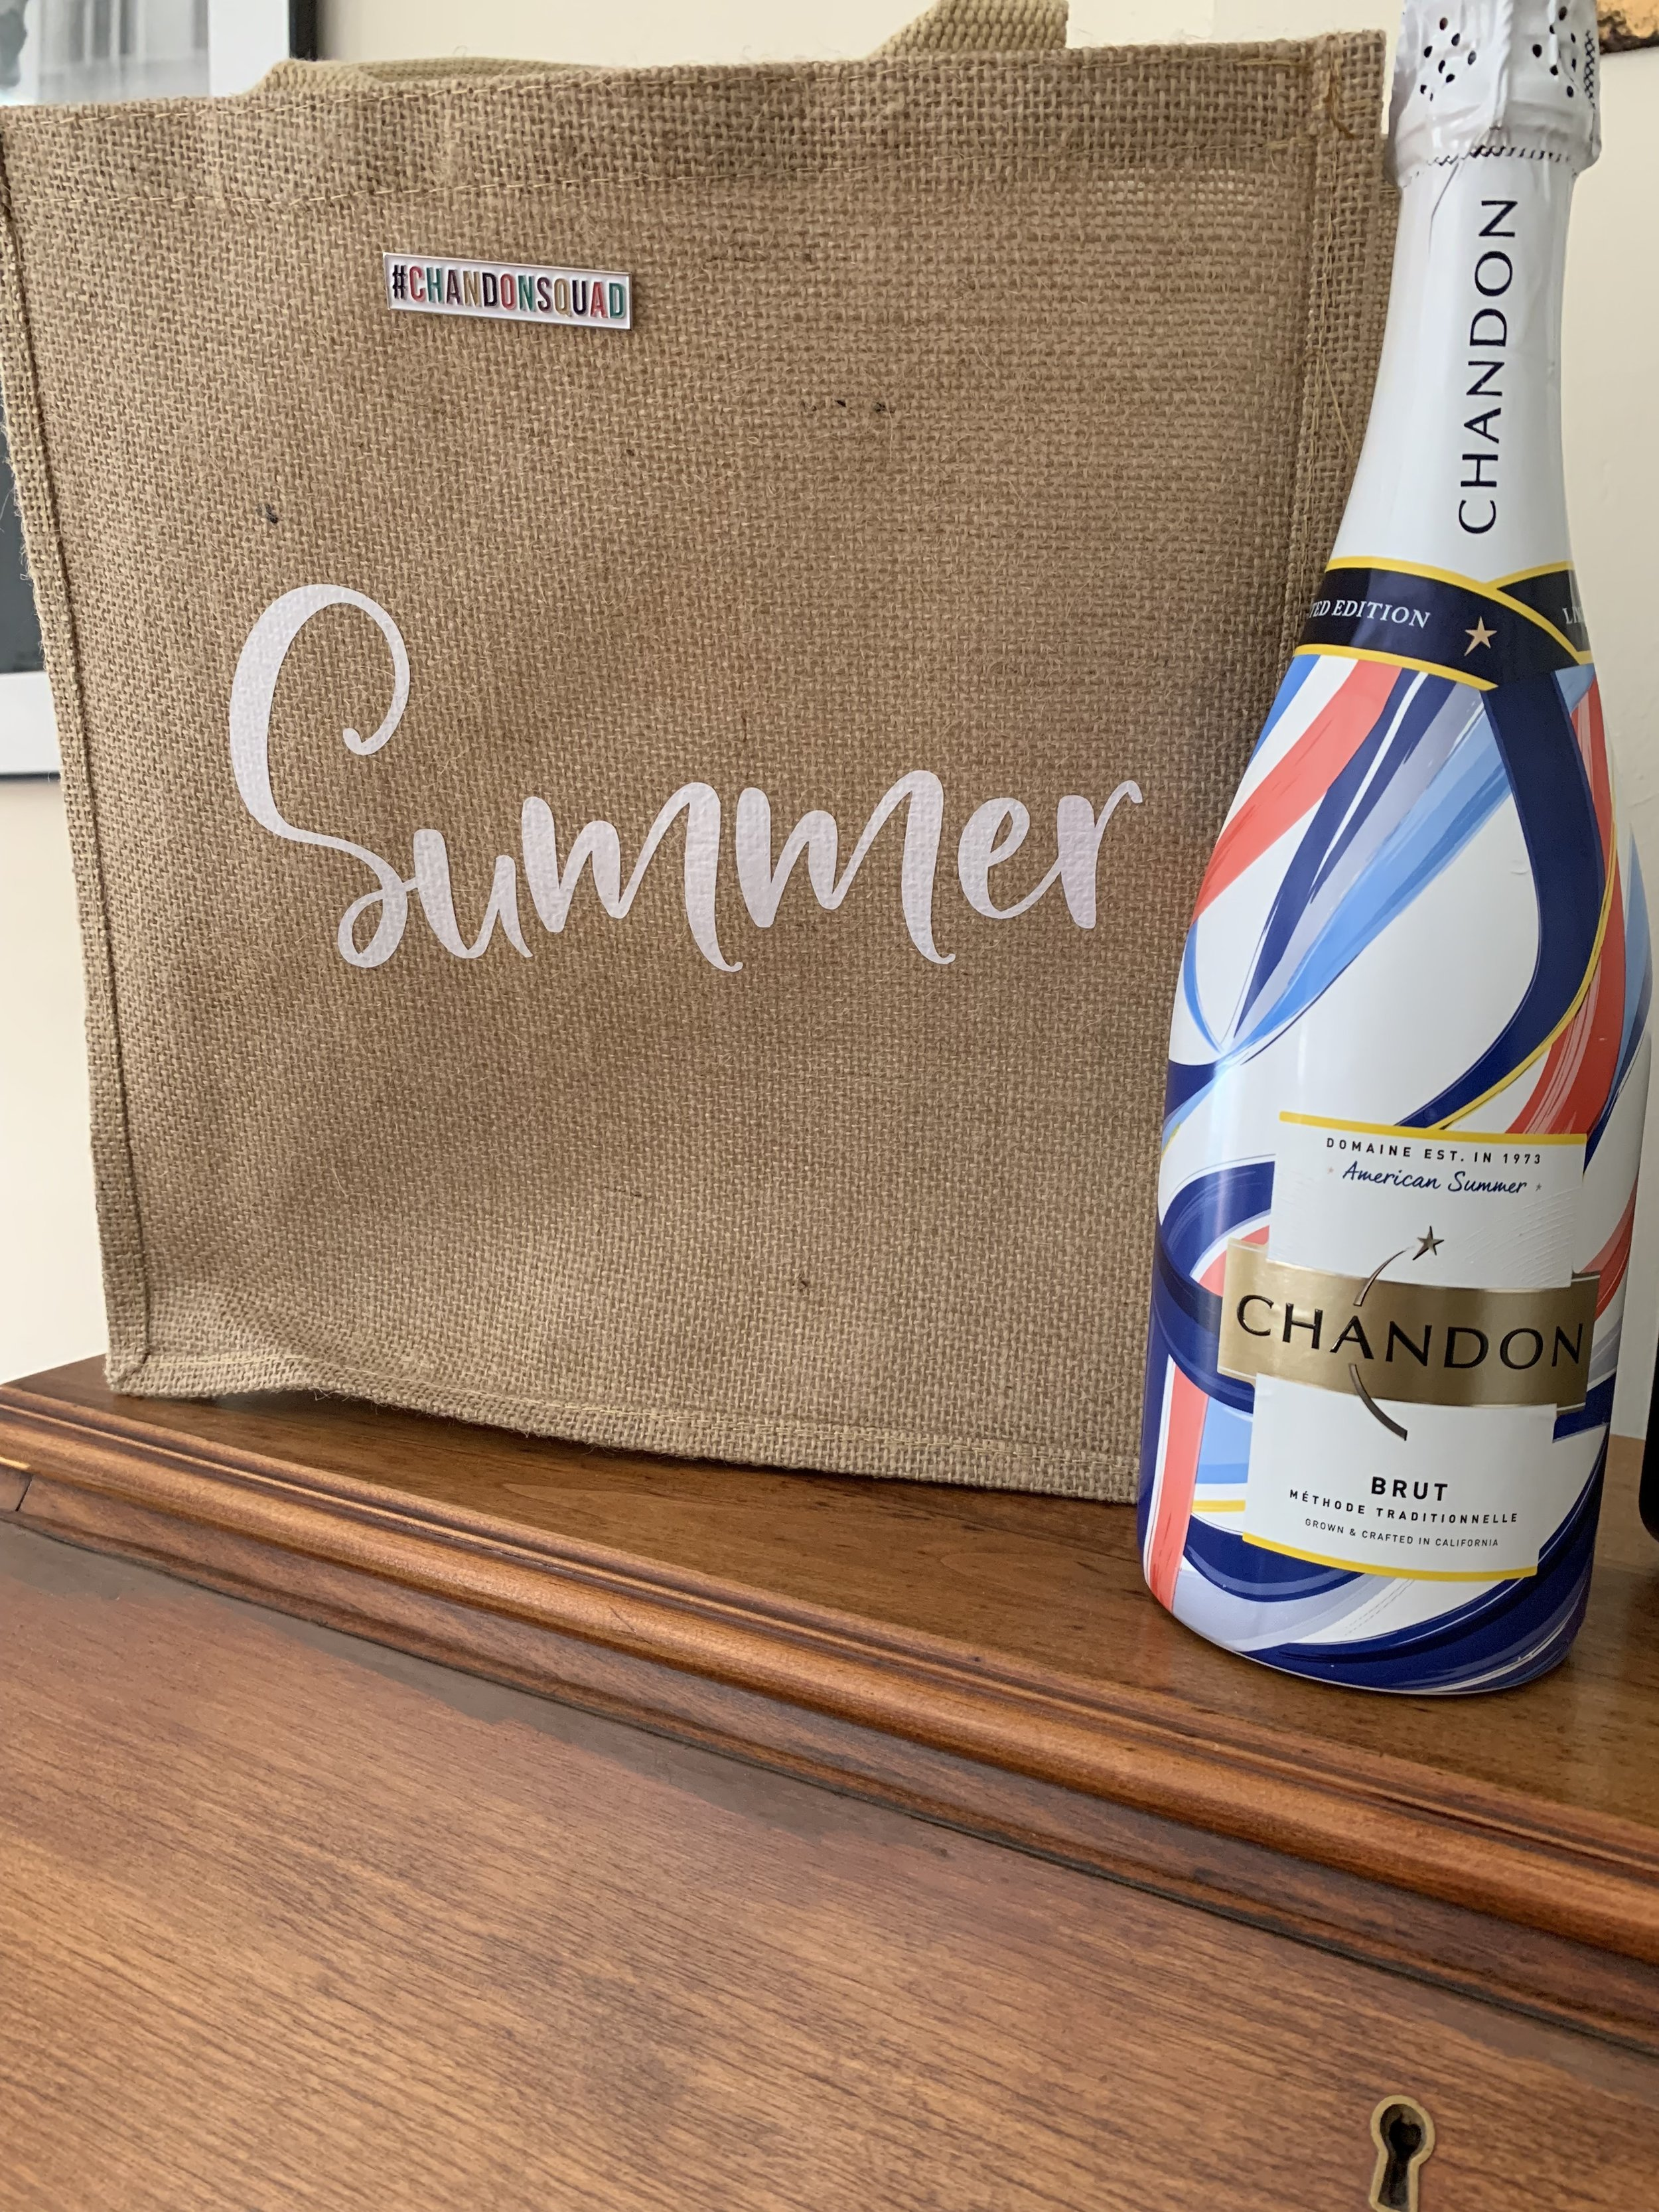 packing up the bubbly for more summer fun! photo by Amanda Schuster